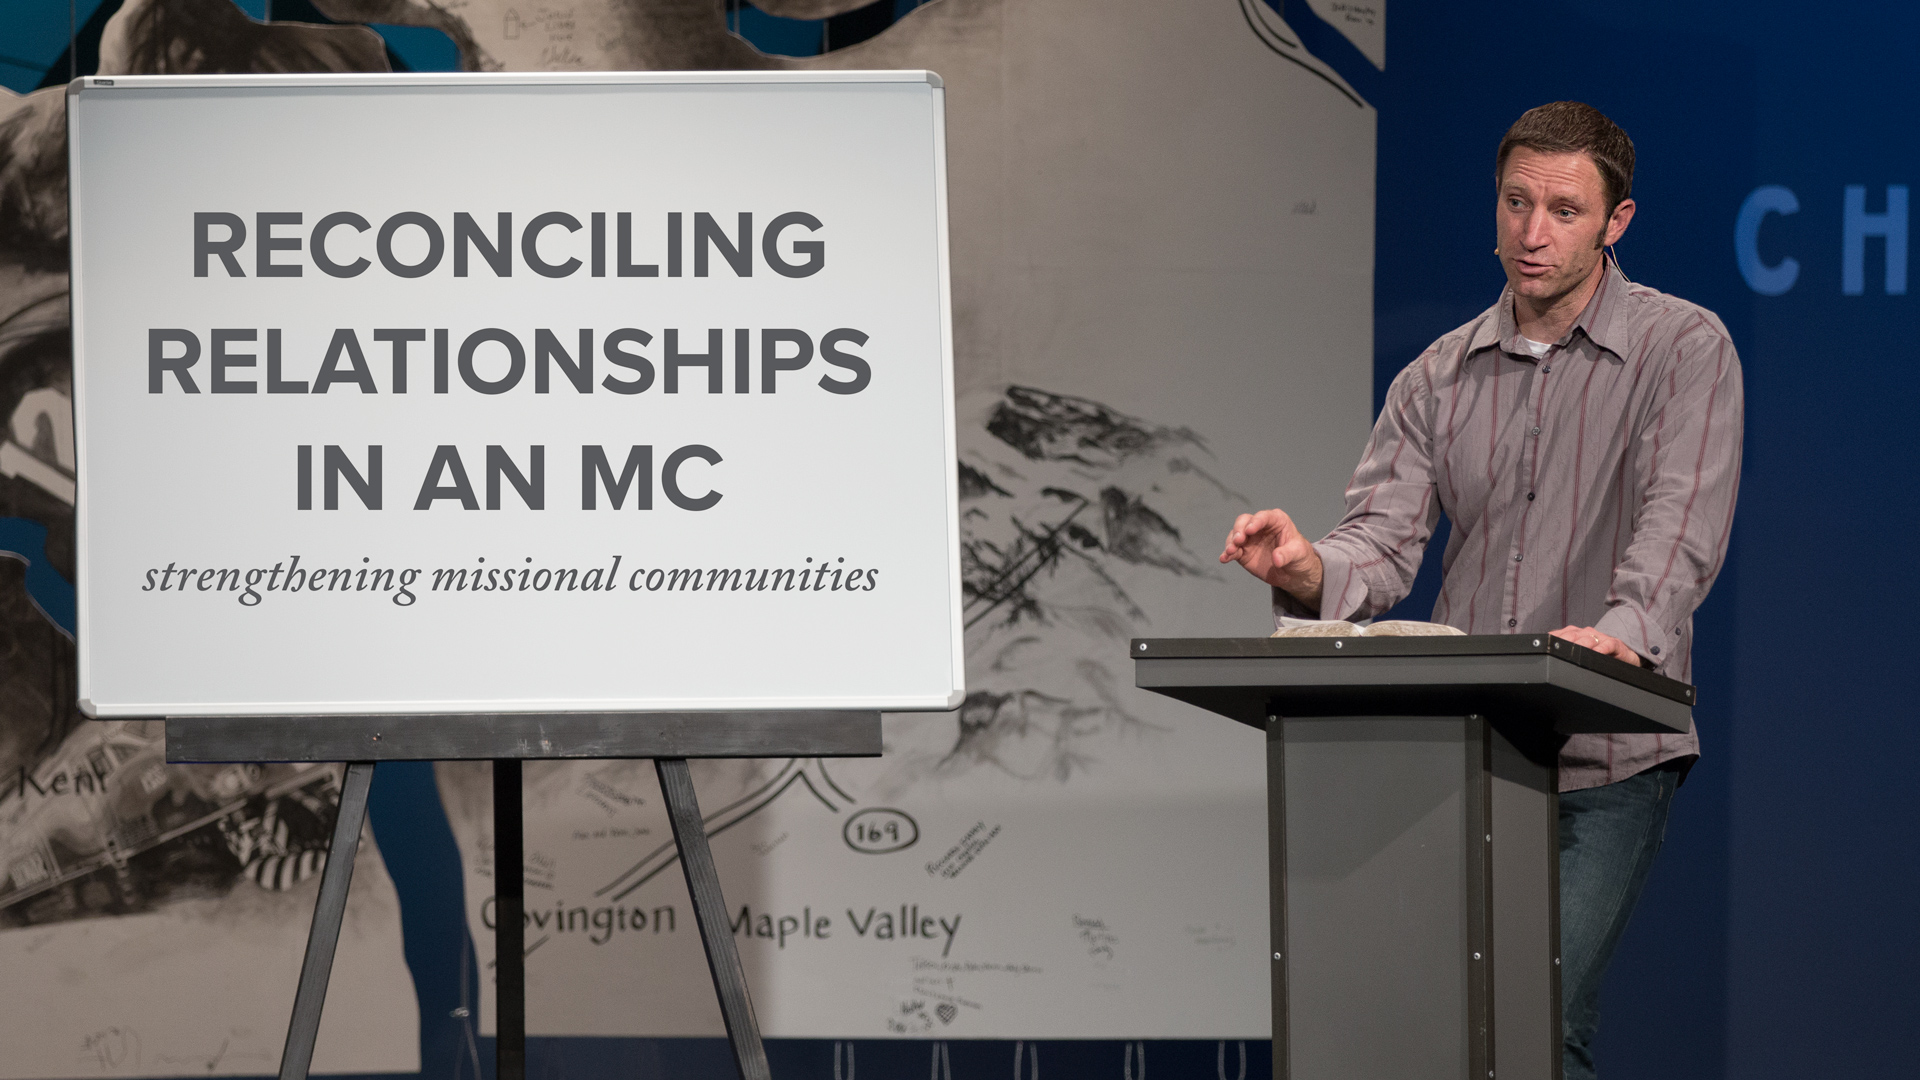 Reconciling Relationships in an MC